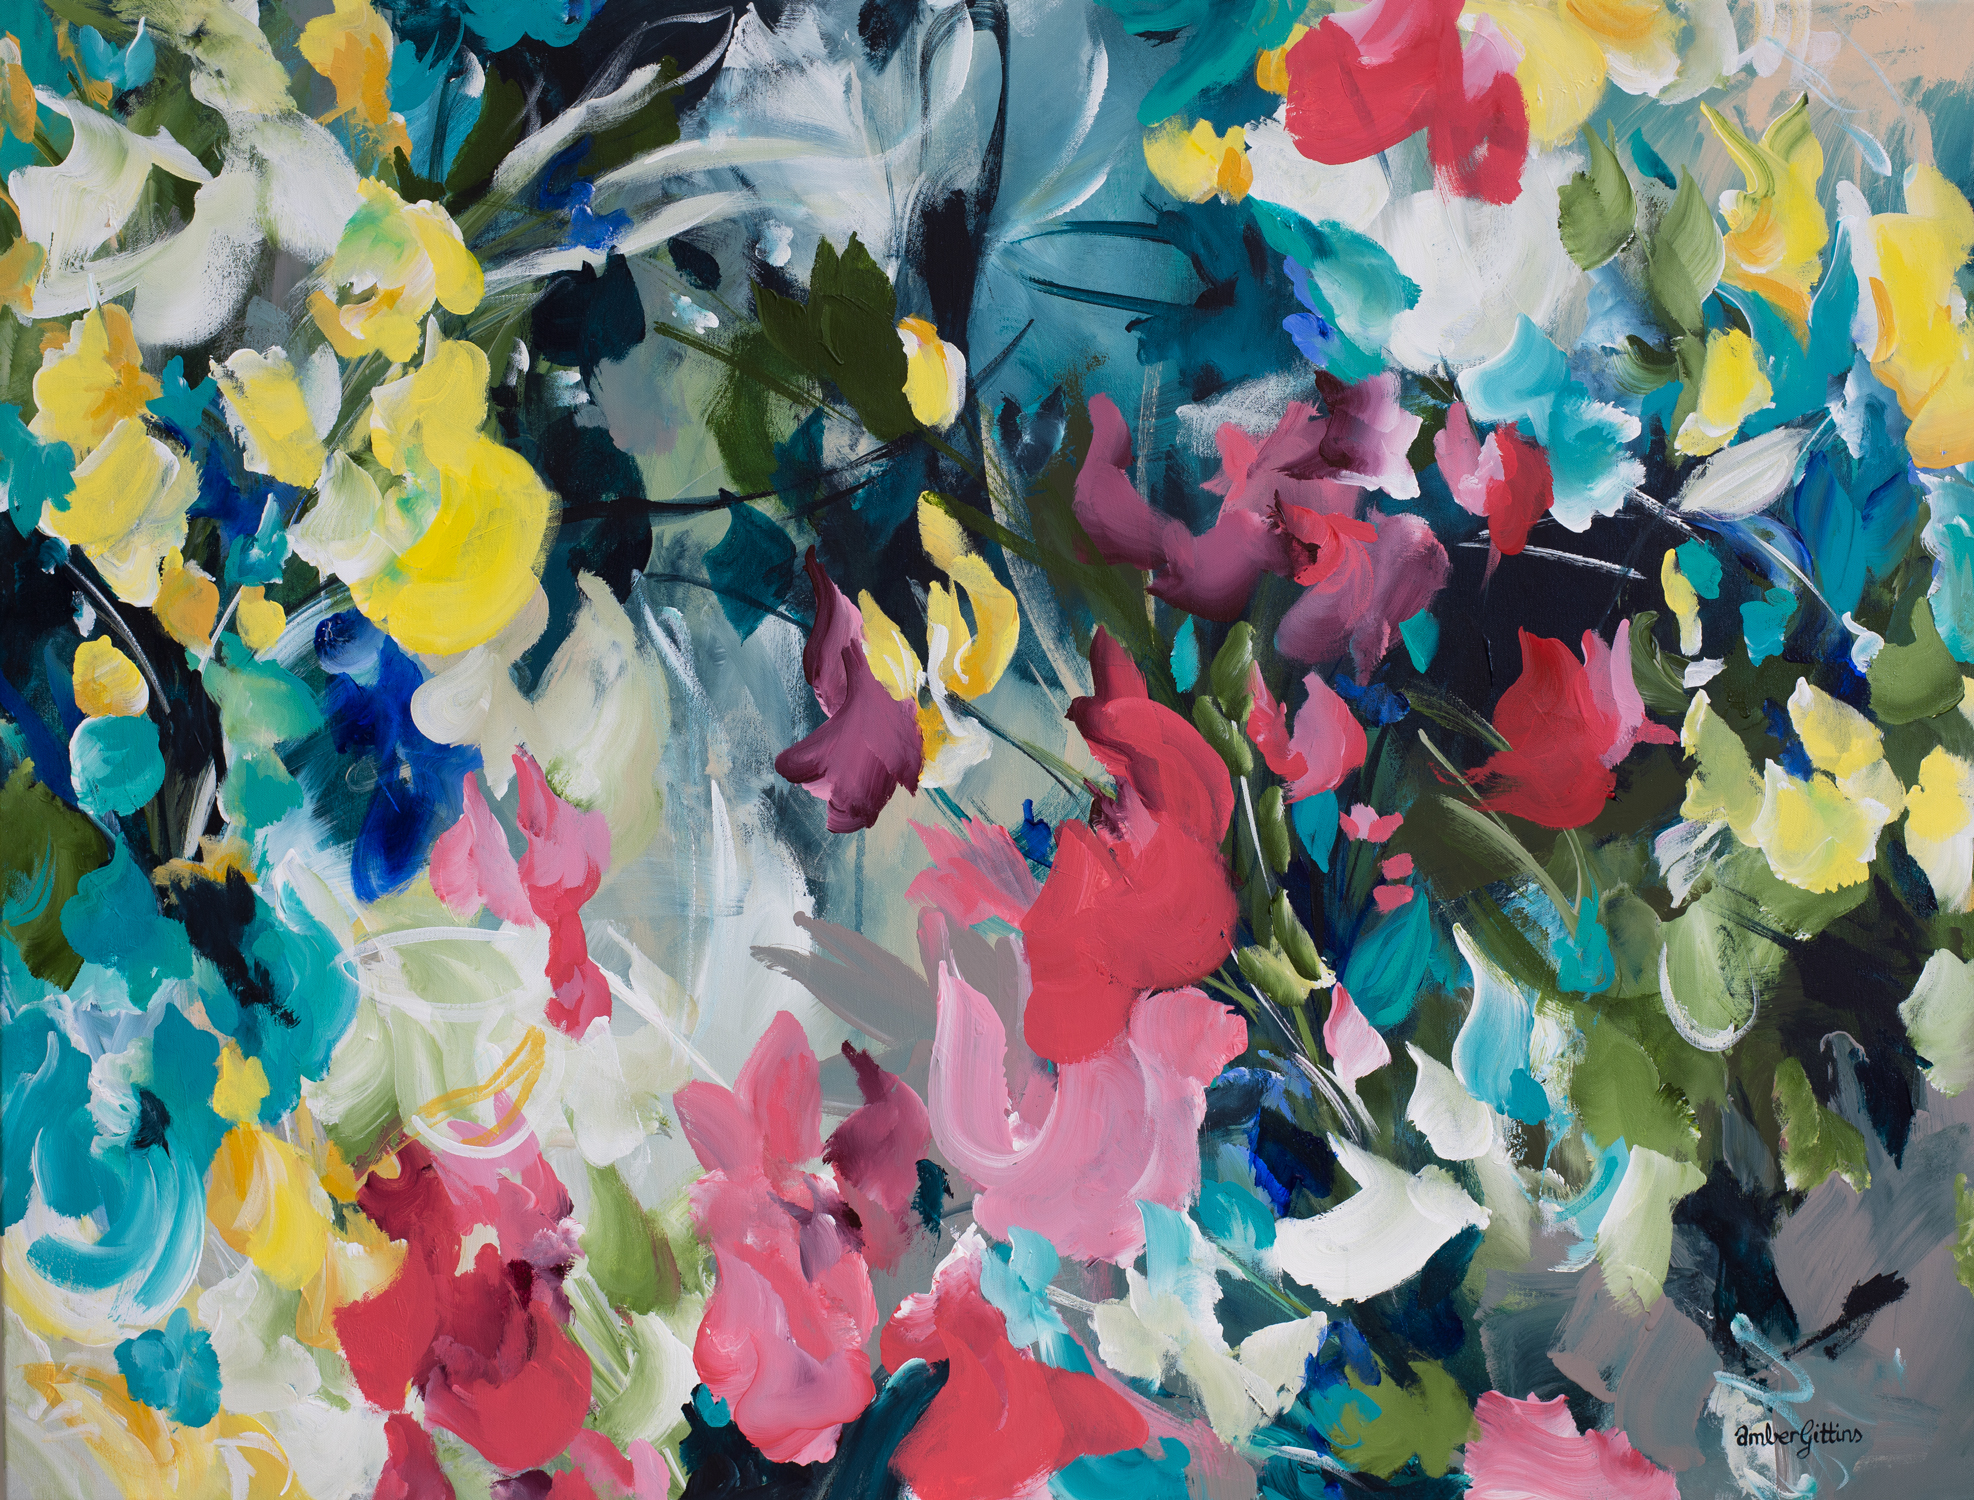 Crazy Love Floral Abstract Painting By Artist Amber Gittins